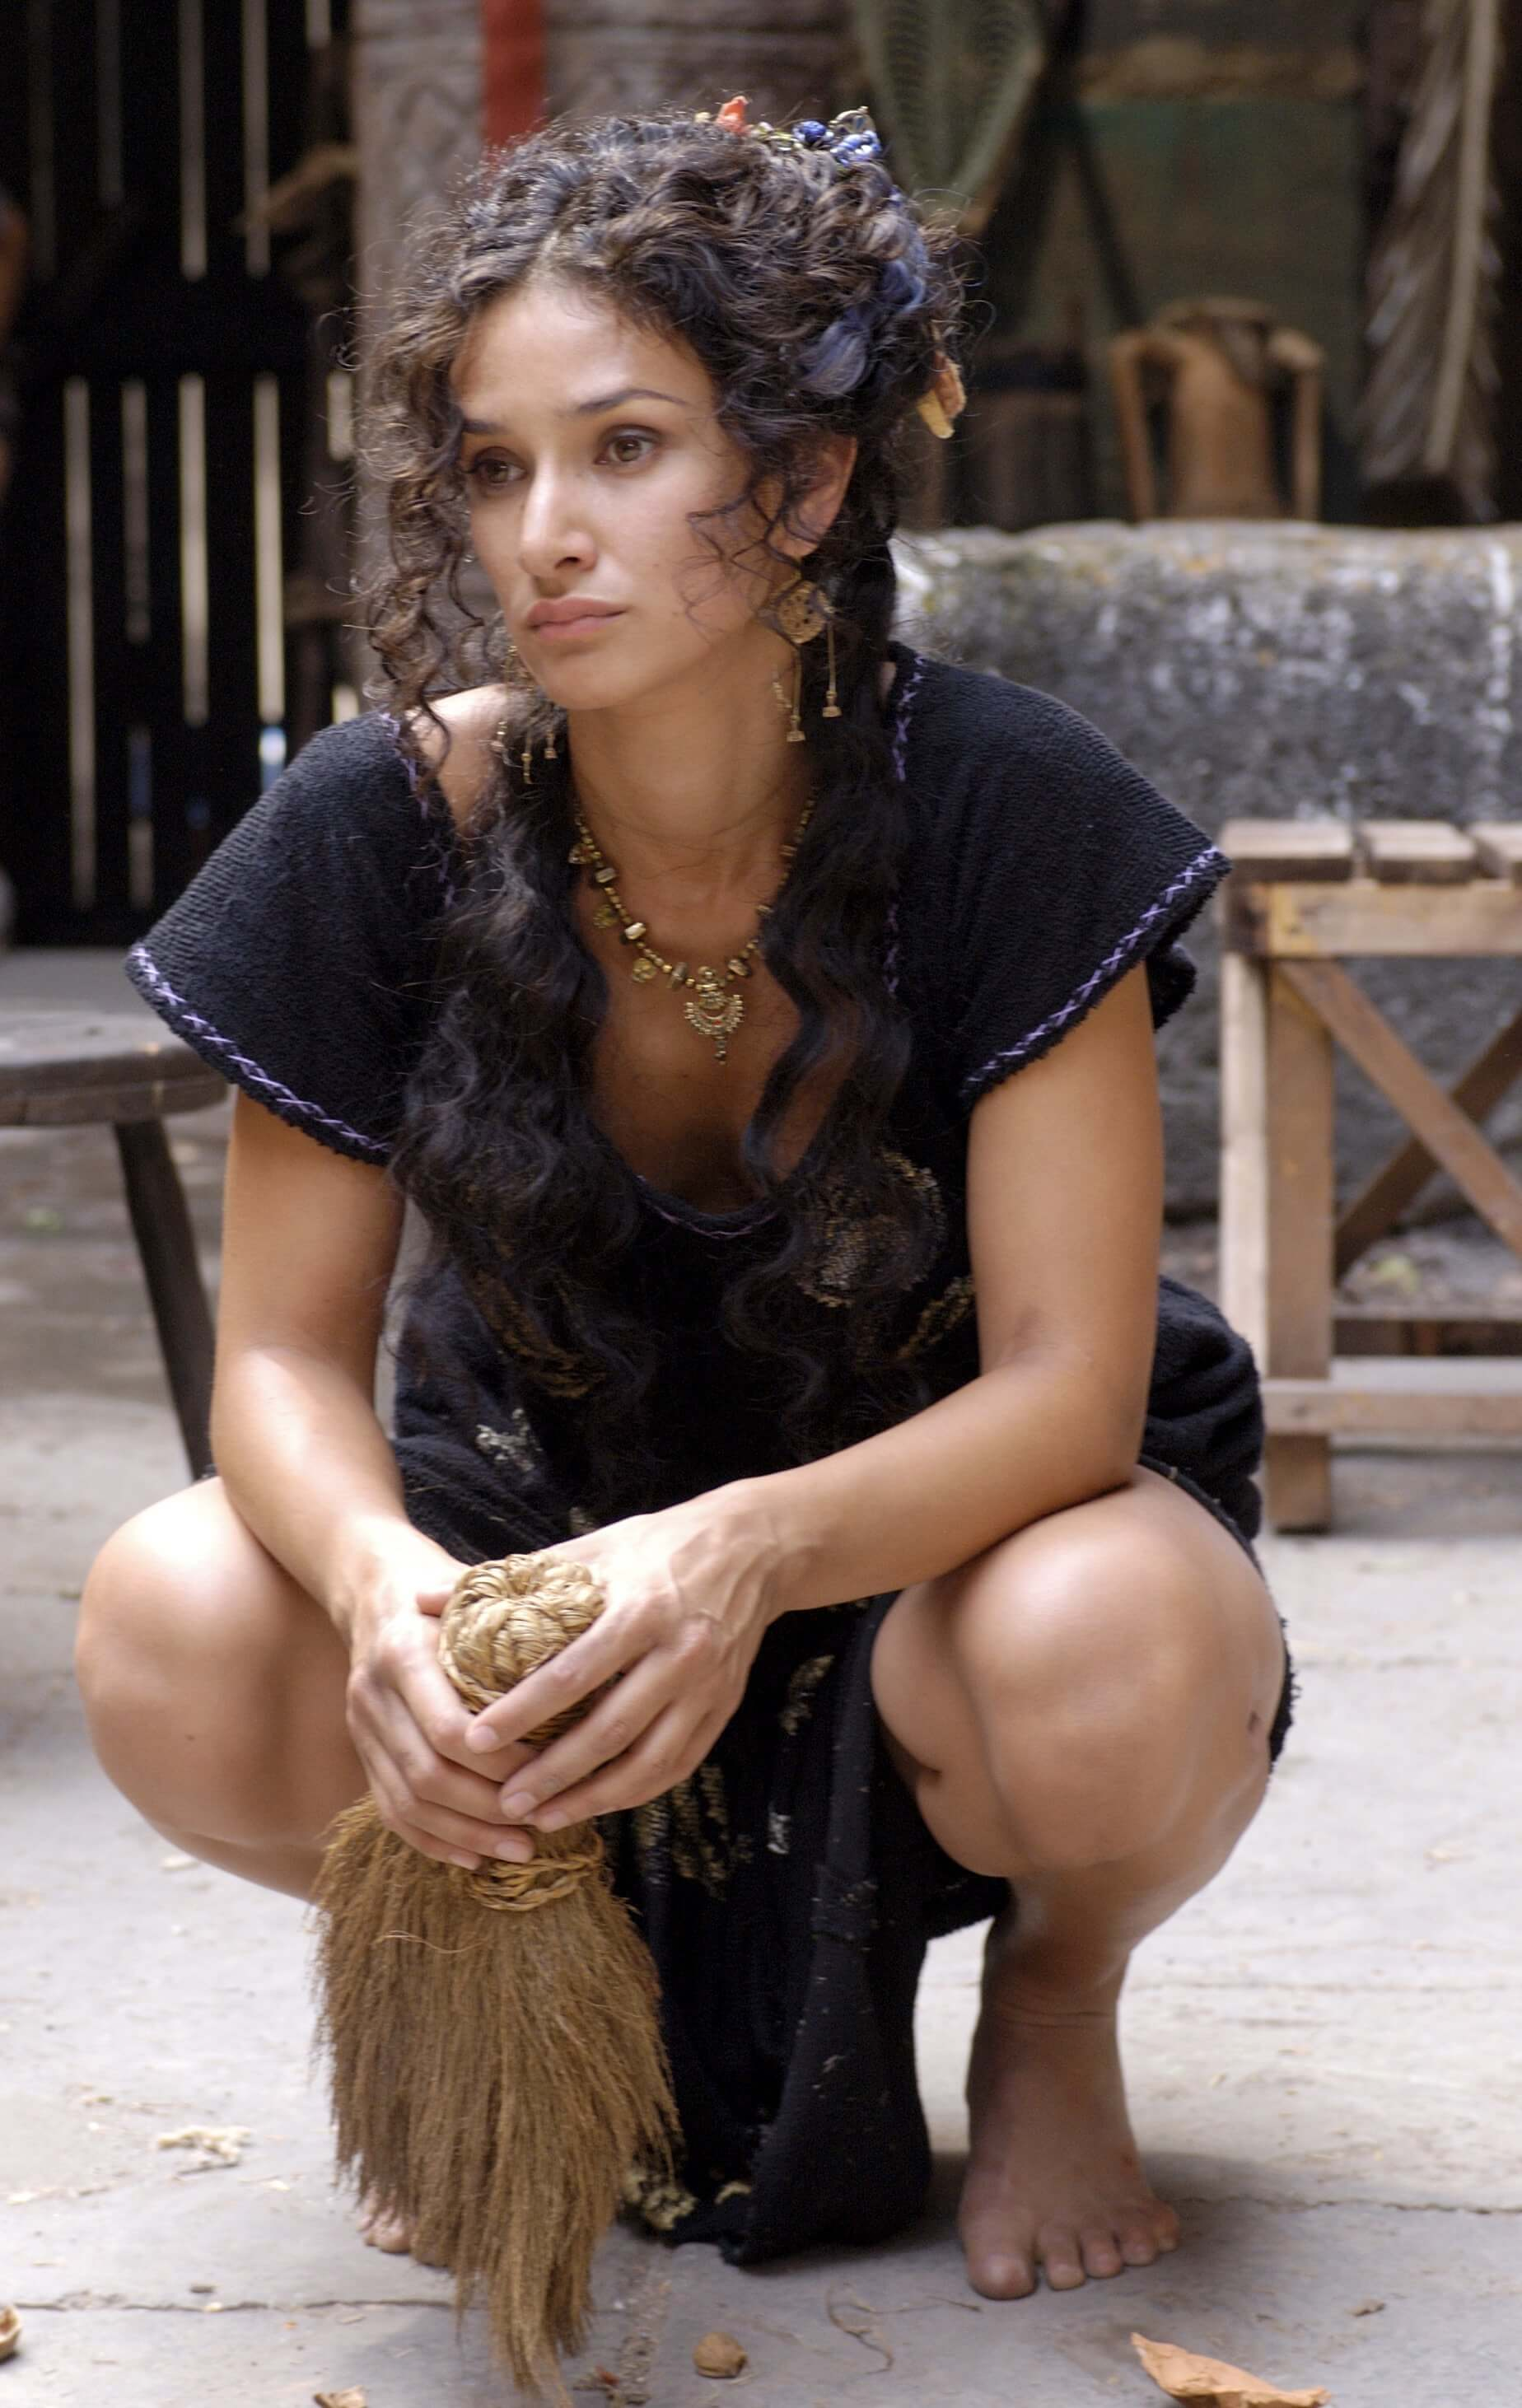 49 Hot Pictures Of Indira Varma Are Slices Of Heaven